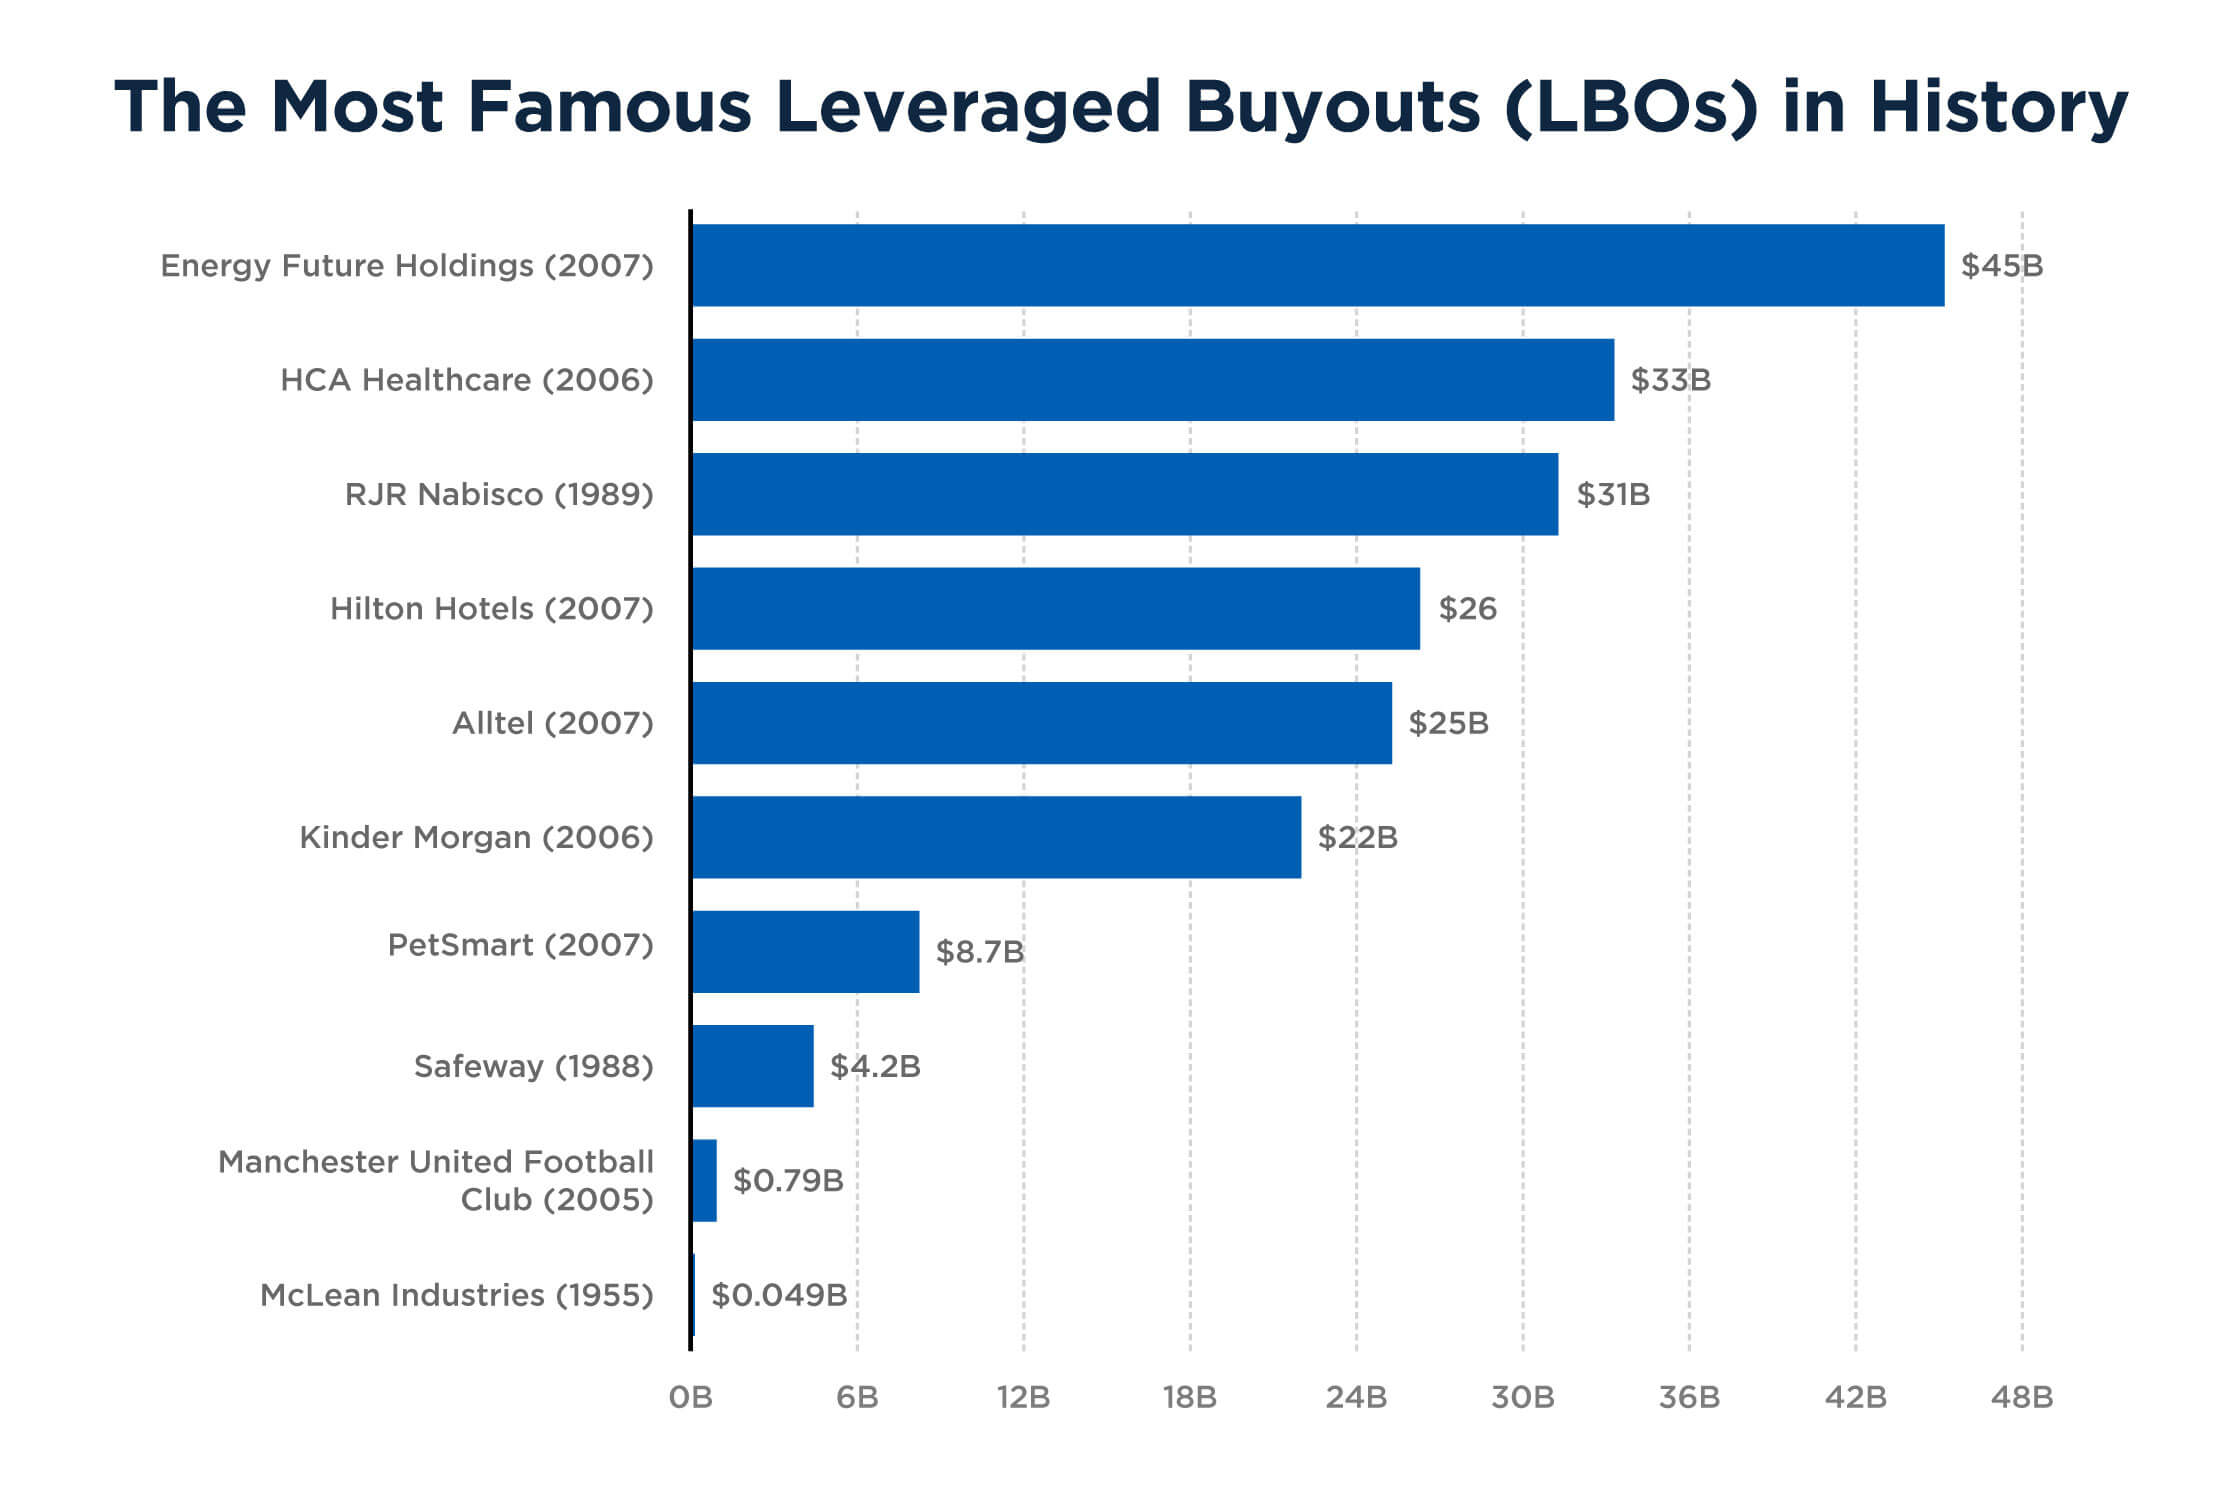 The Most Famous Leveraged Buyouts (LBOs) in History